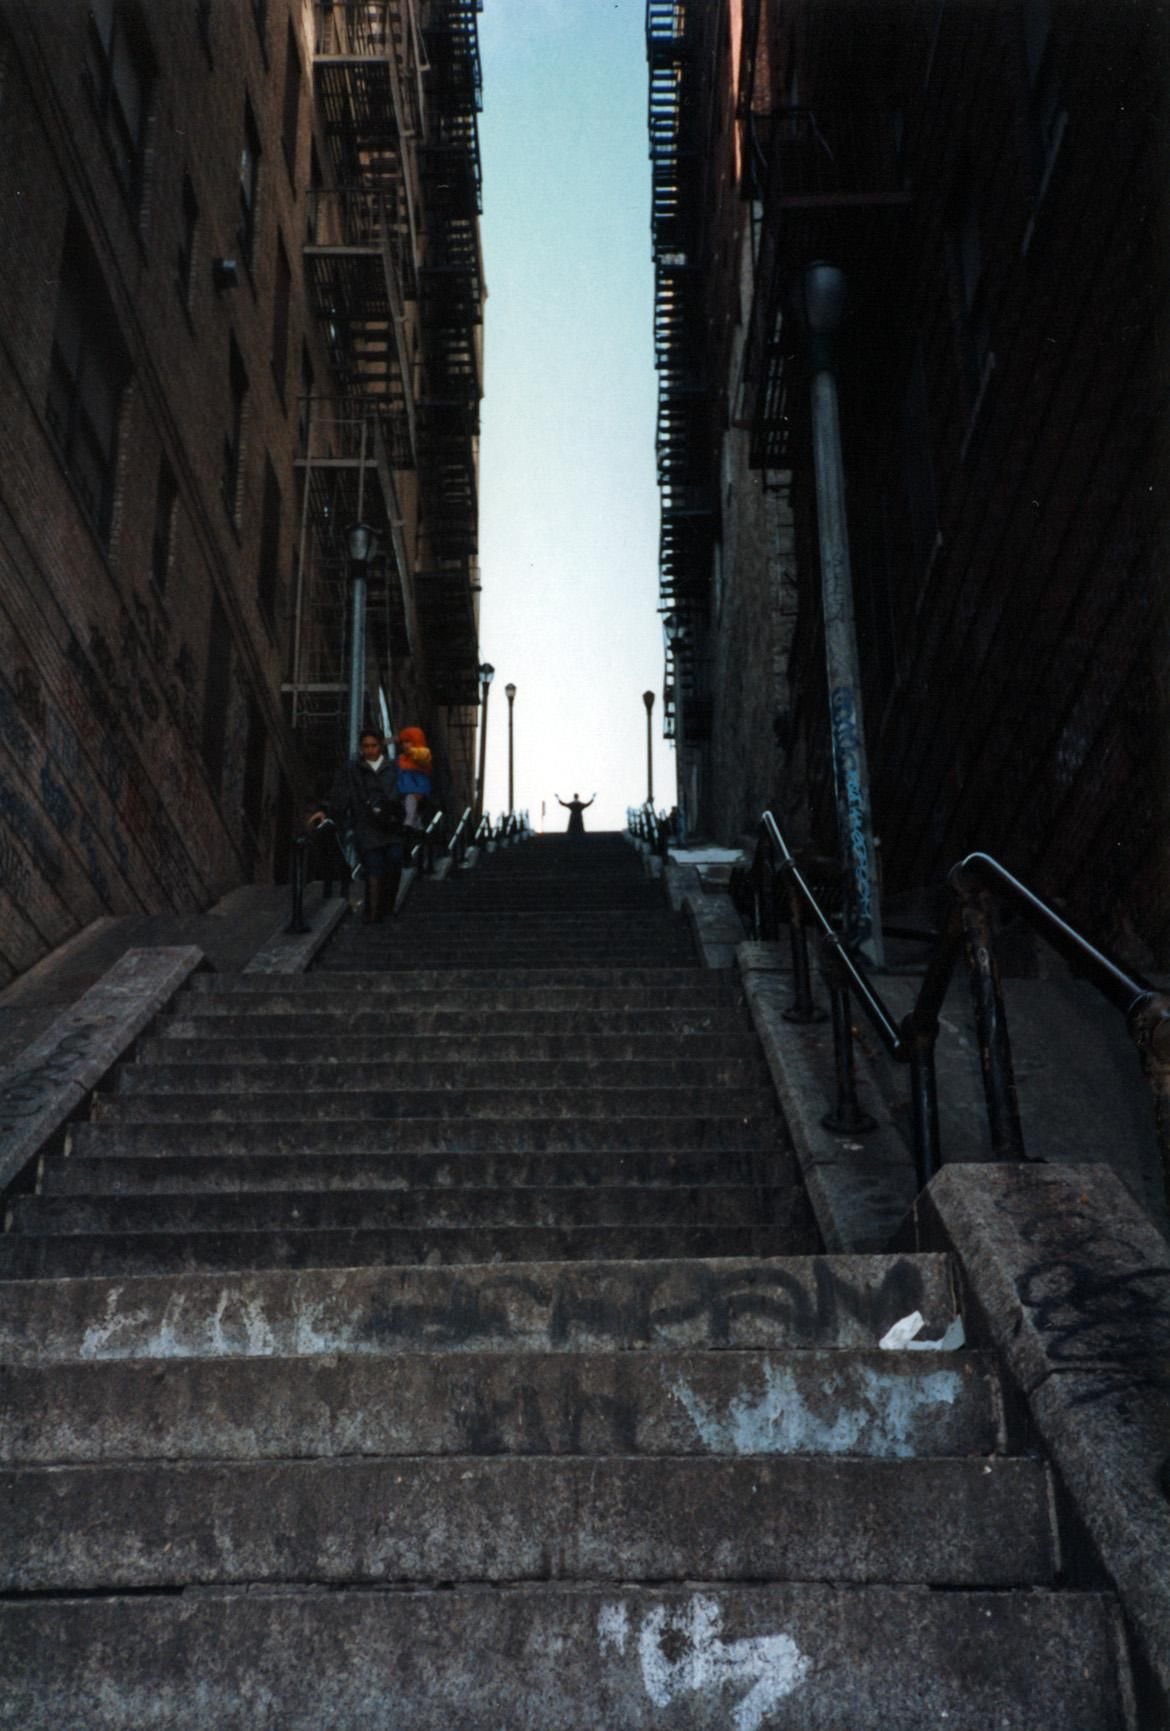 1993 picture of me atop the famous stairs in Joker.https